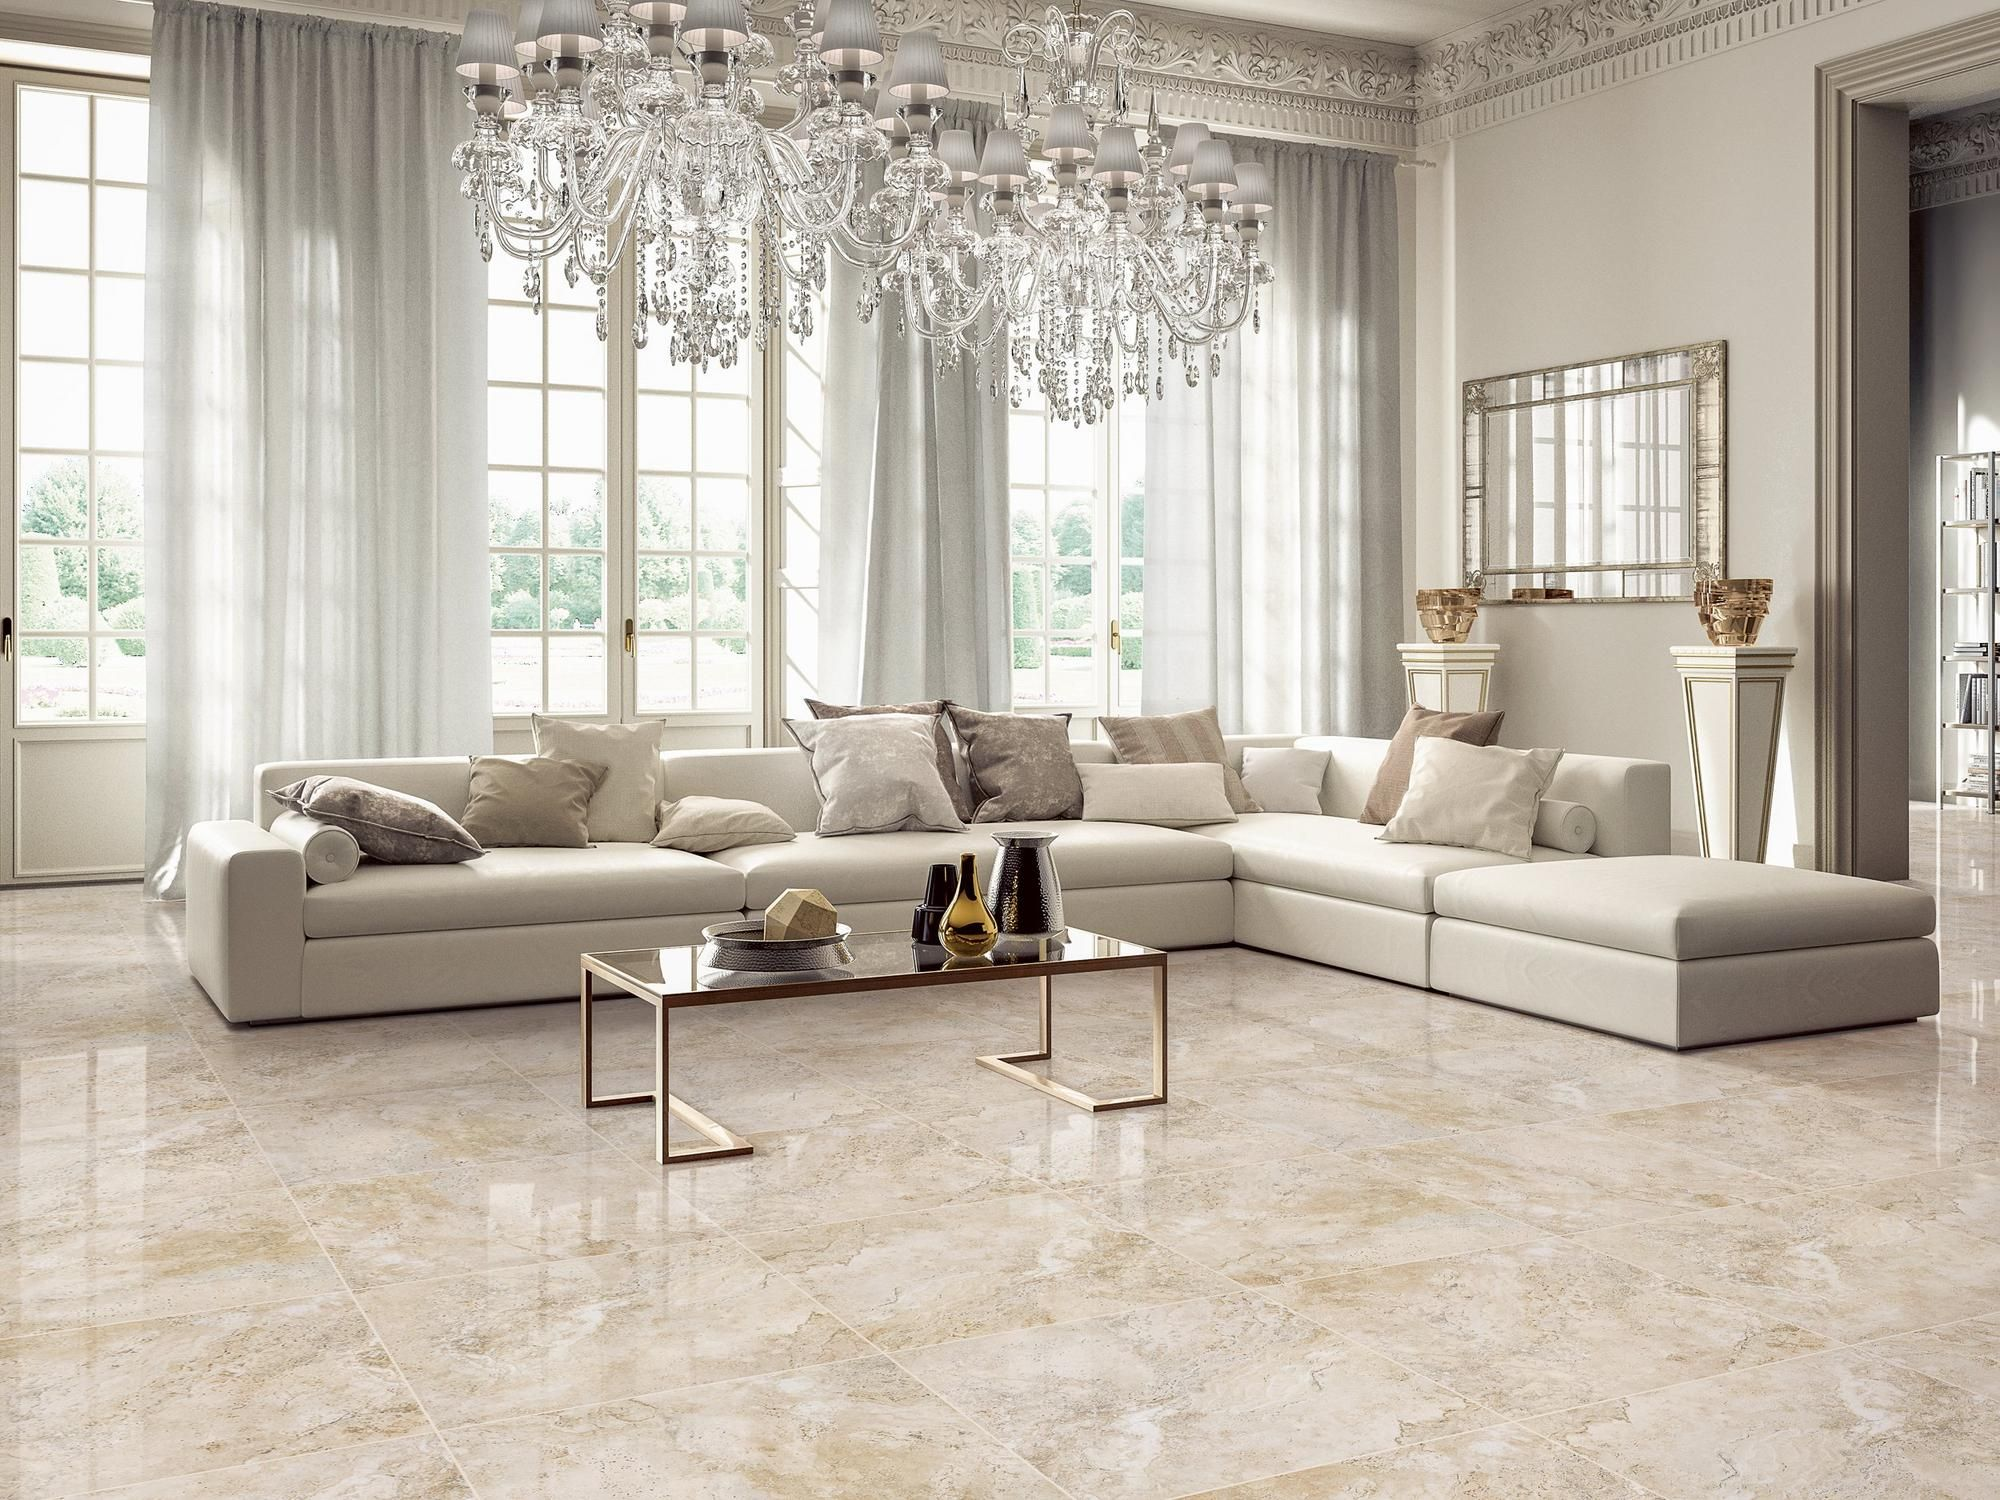 Tarsus Almond Polished Porcelain Tile Floor Decor Living Room Tiles Tile Floor Living Room Floor Tiles Living Room Modern